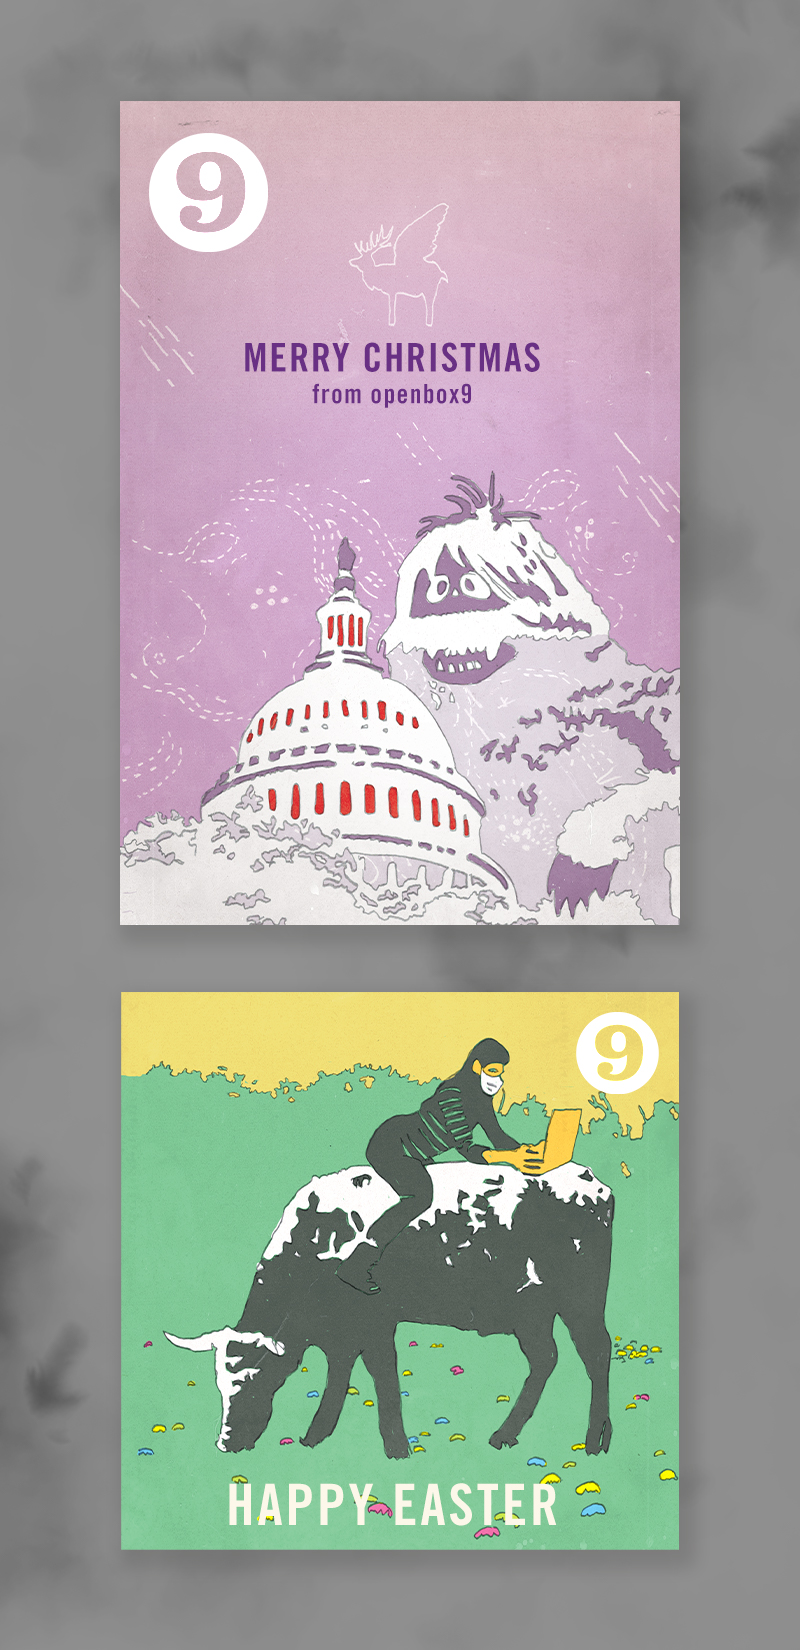 Holiday cards for openbox9